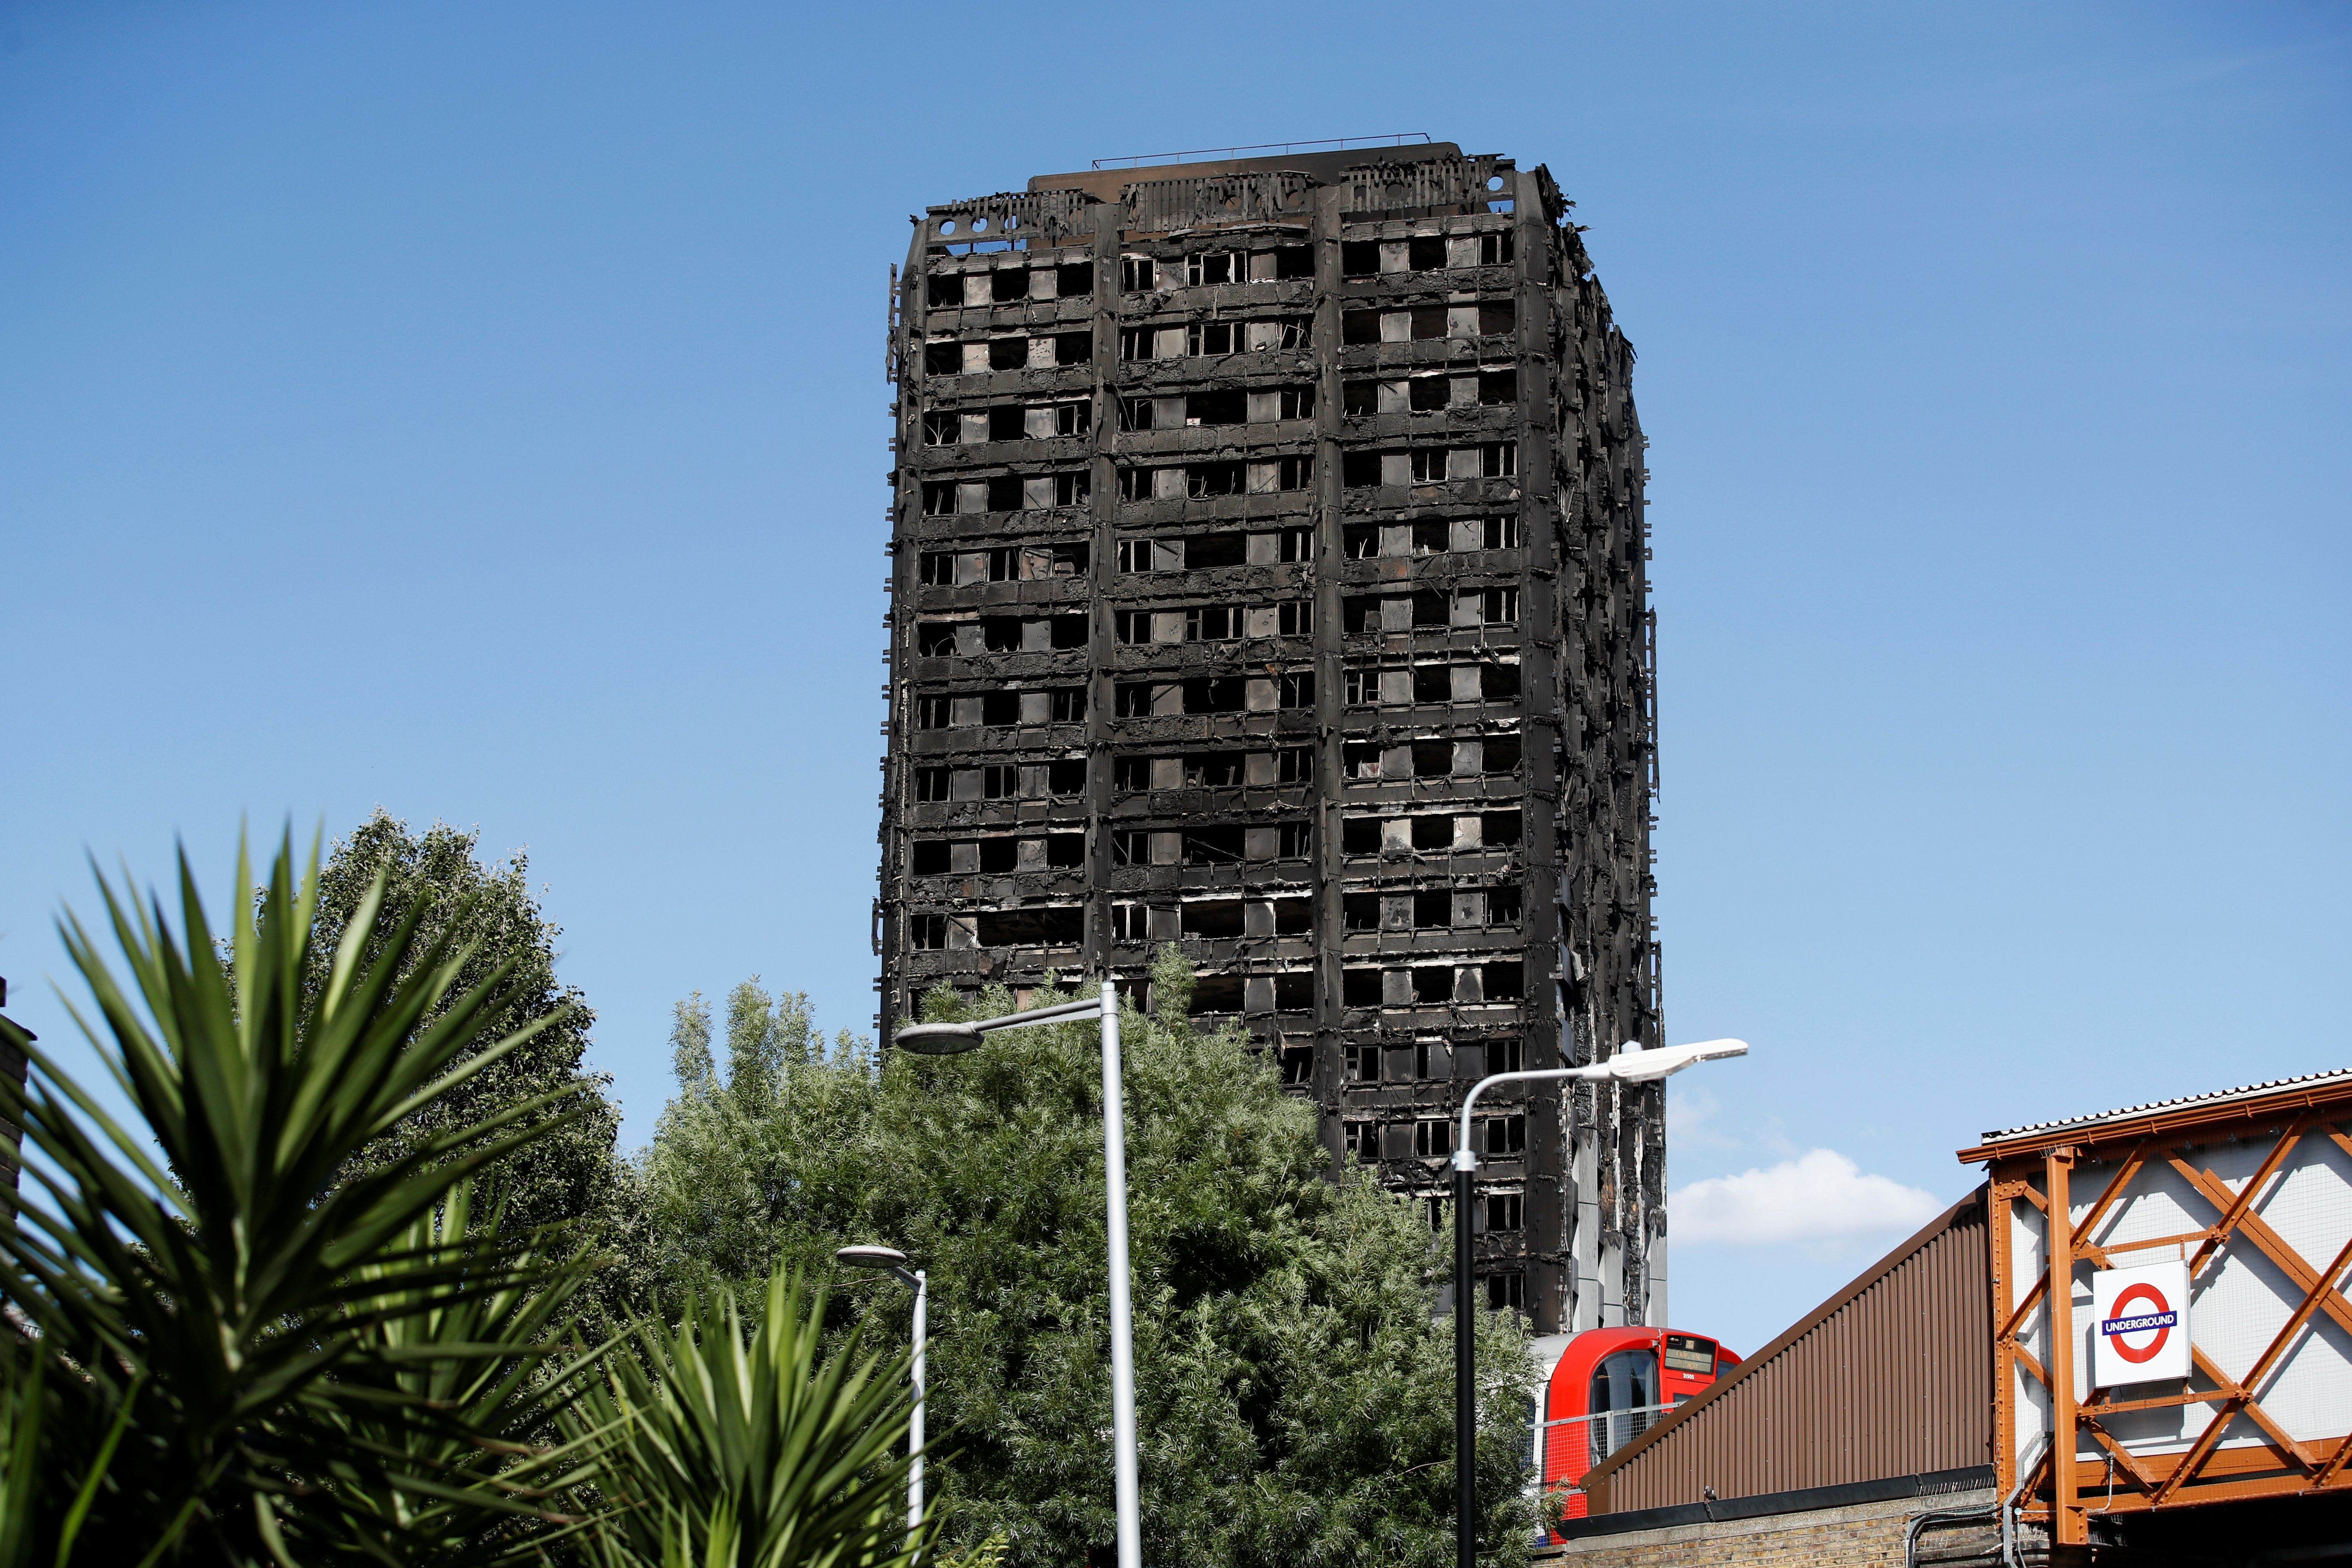 Police have revealed they may consider individual manslaughter charges in Grenfell Tower blaze